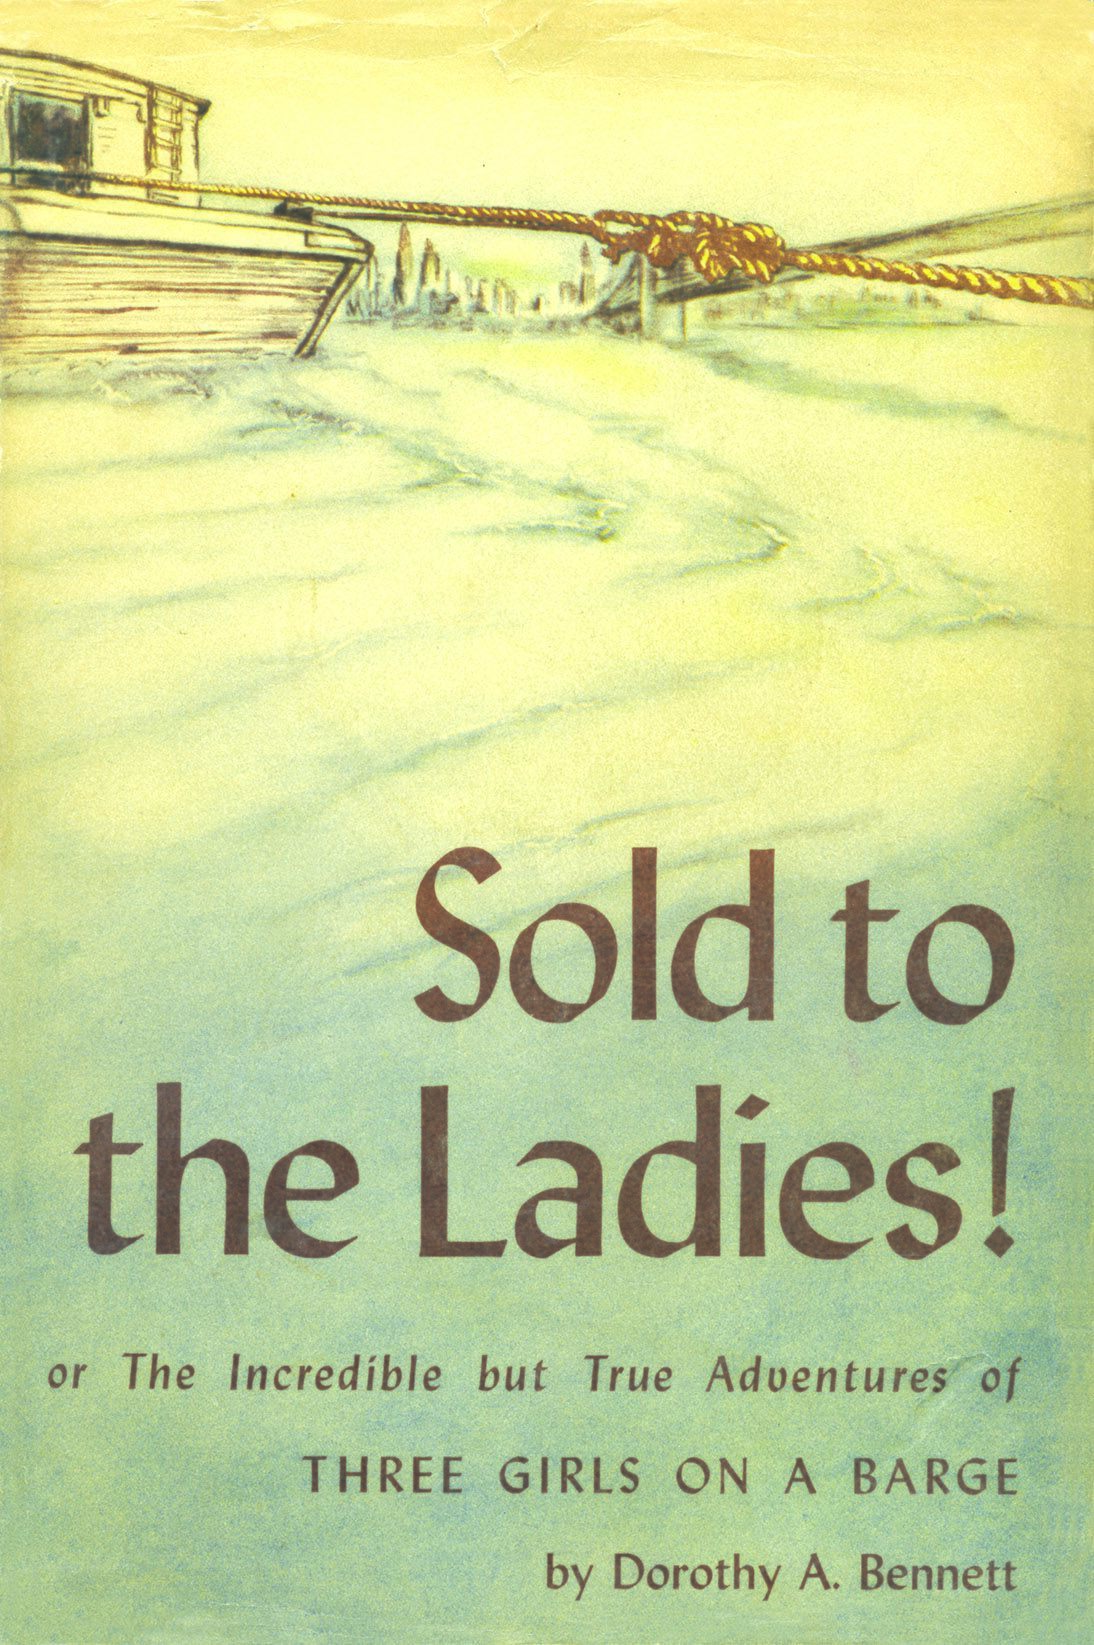 Sold to the Ladies! or The Incredible but True Adventures of THREE GIRLS ON A BARGE, by Dorothy A. Bennett